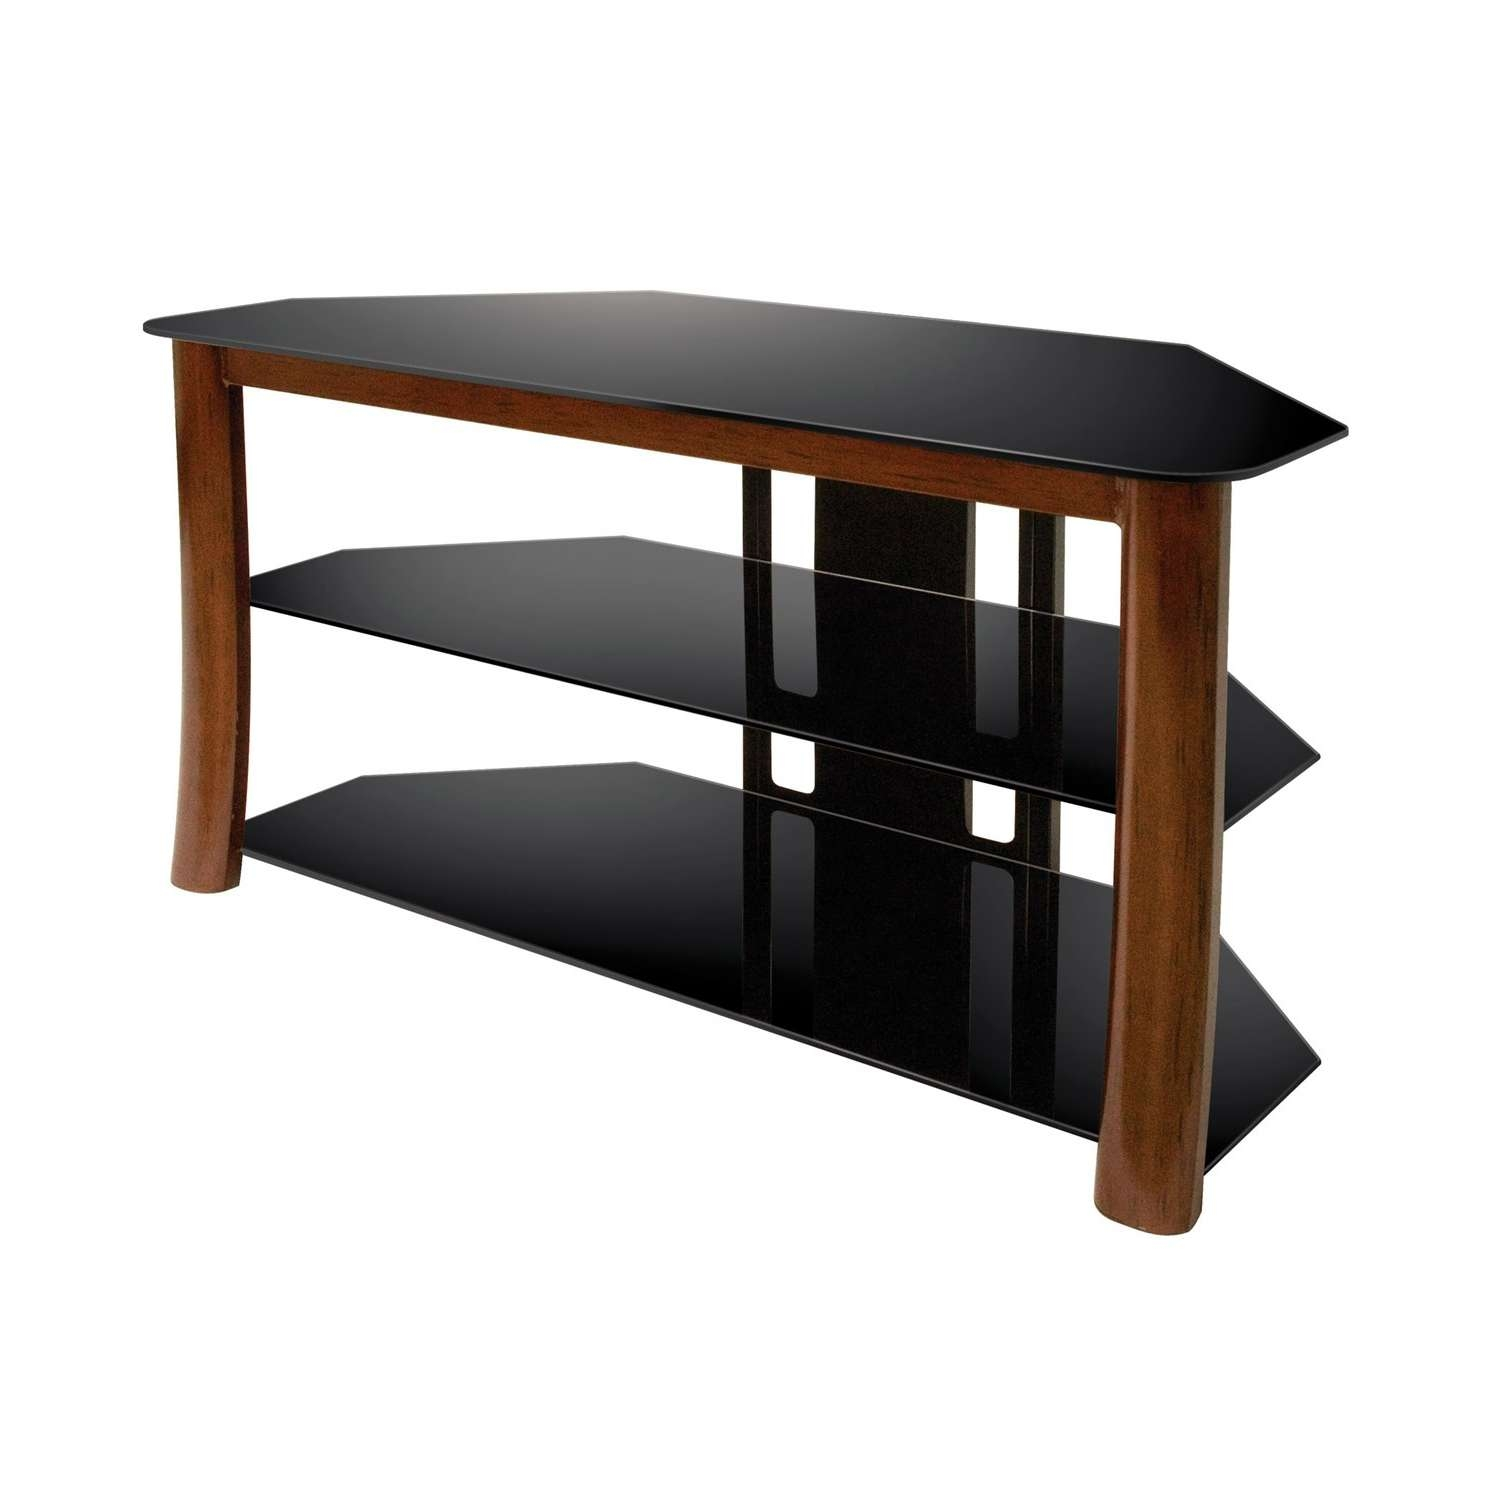 Bell'o Tp4501 – Triple Play Universal Flat Panel Tv Stand | The Regarding Bell'o Triple Play Tv Stands (View 4 of 15)